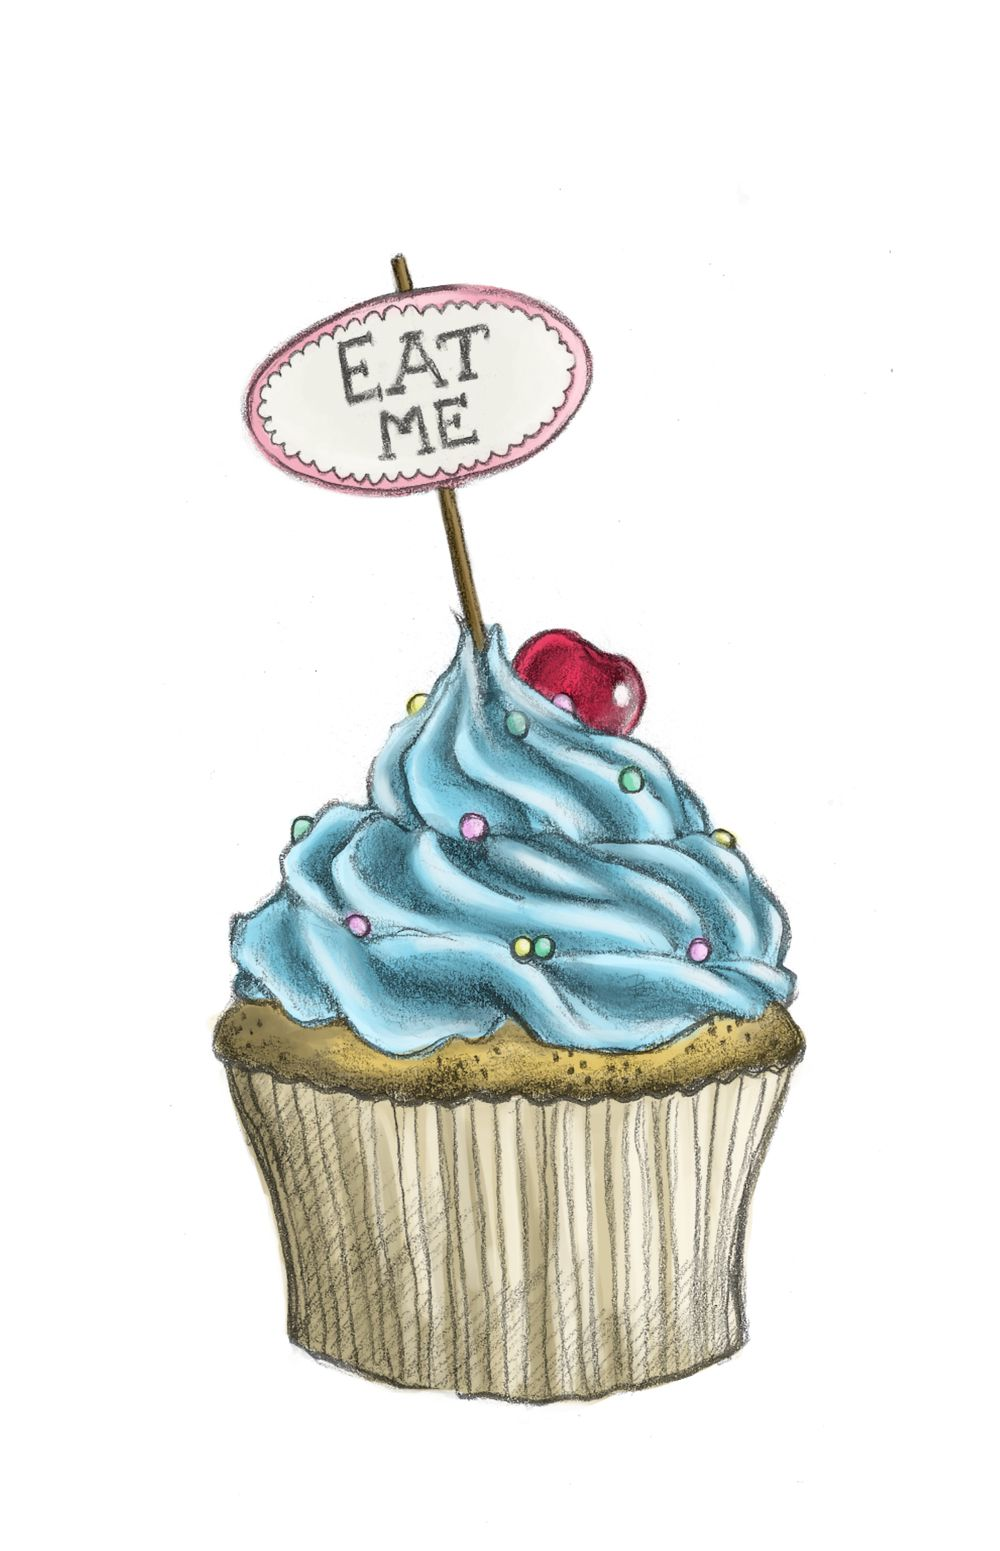 Artist Who Draws Cake : Images For > Cute Drawings Of Cupcakes Still Life Ideas ...